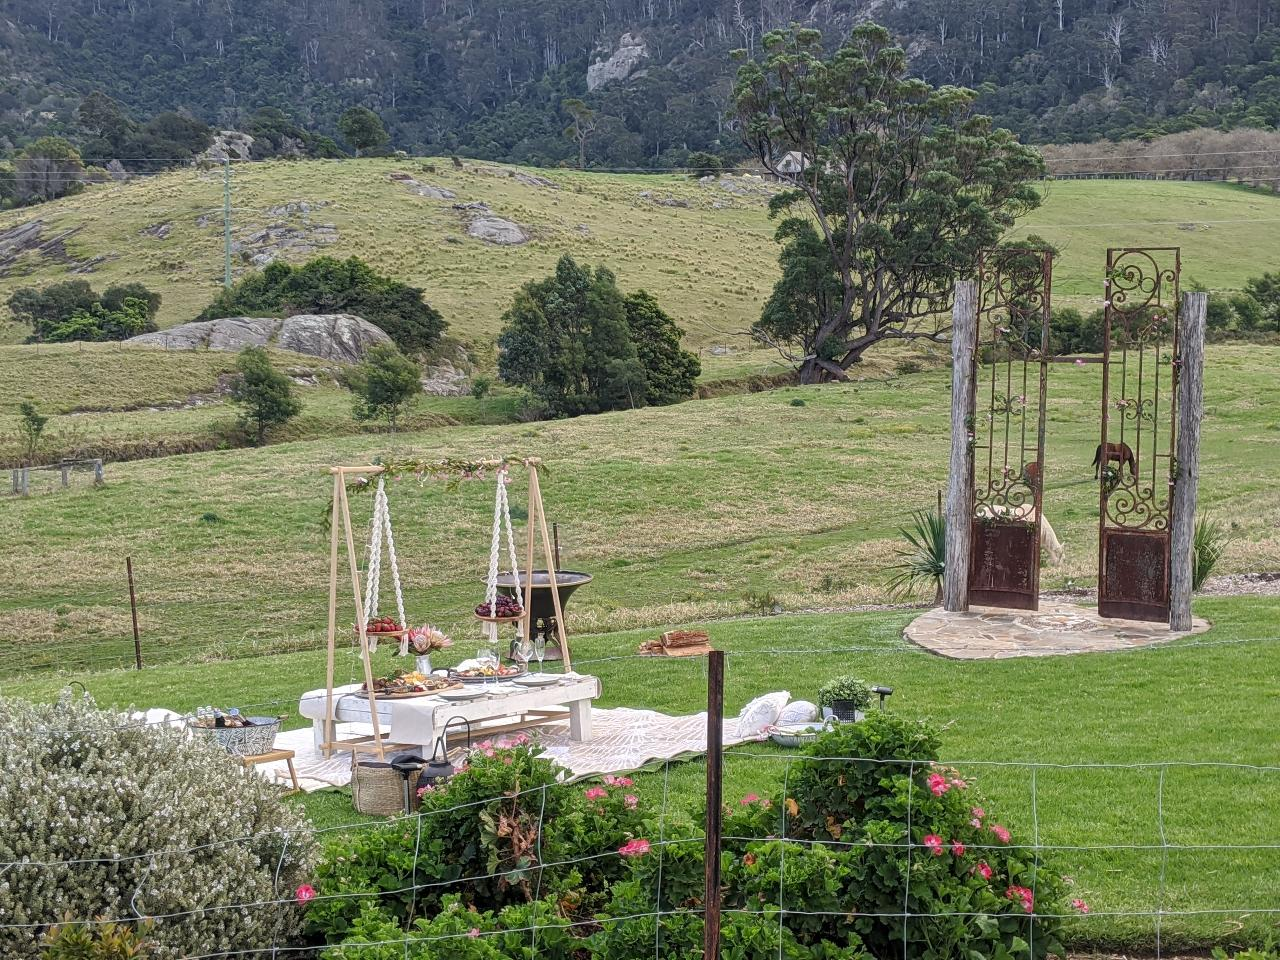 POP UP OUTDOOR DINING EXPERIENCE - MOUNTAIN VIEW FARM HONEYMOON ENGAGEMENT WEDDING COUPLES PICNIC - Perfect for special occasions.